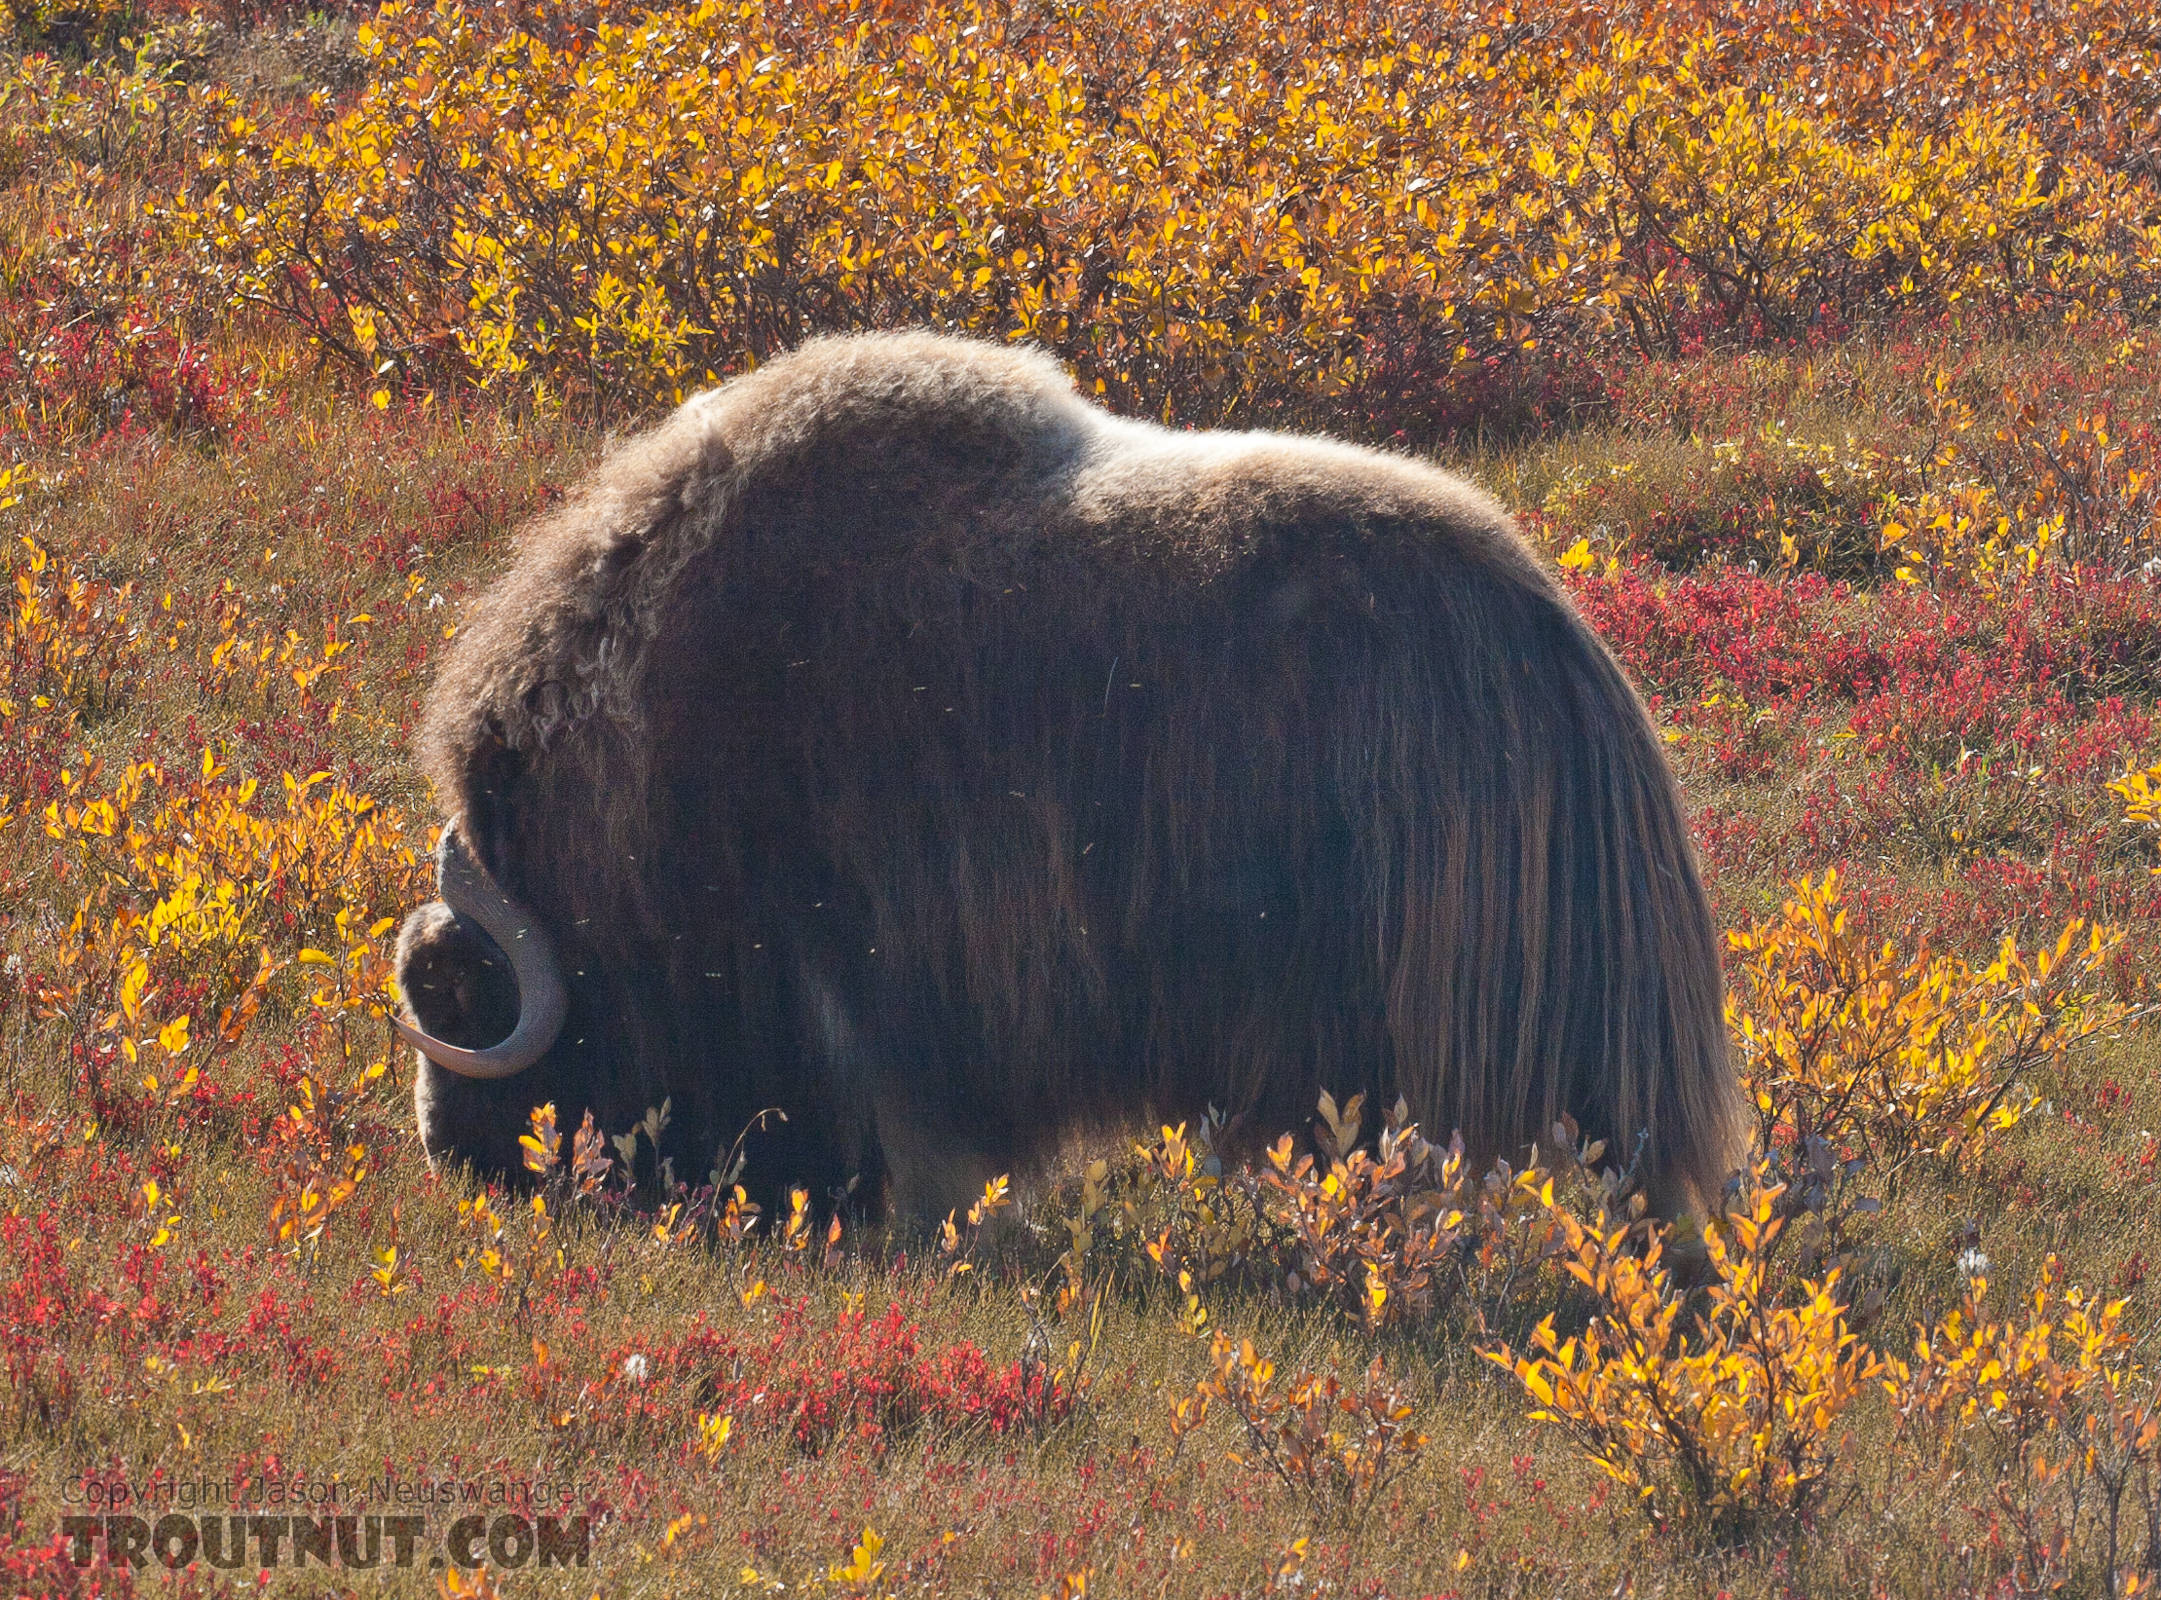 A musk ox grazing near the Sag River in the coastal plain. From Dalton Highway in Alaska.